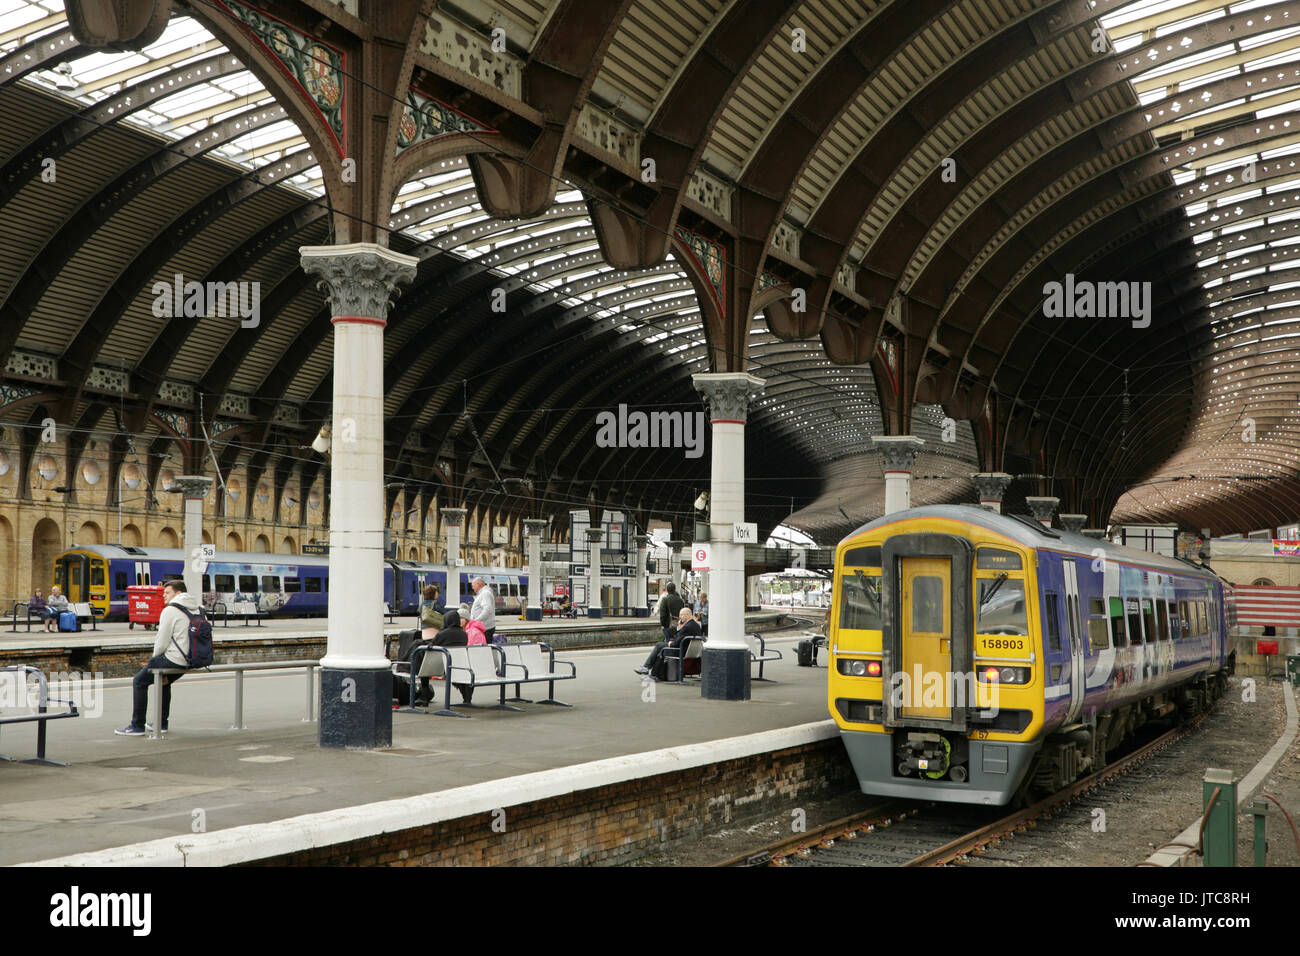 Northern rail class 158 diesel multiple units standing at York station, UK - Stock Image